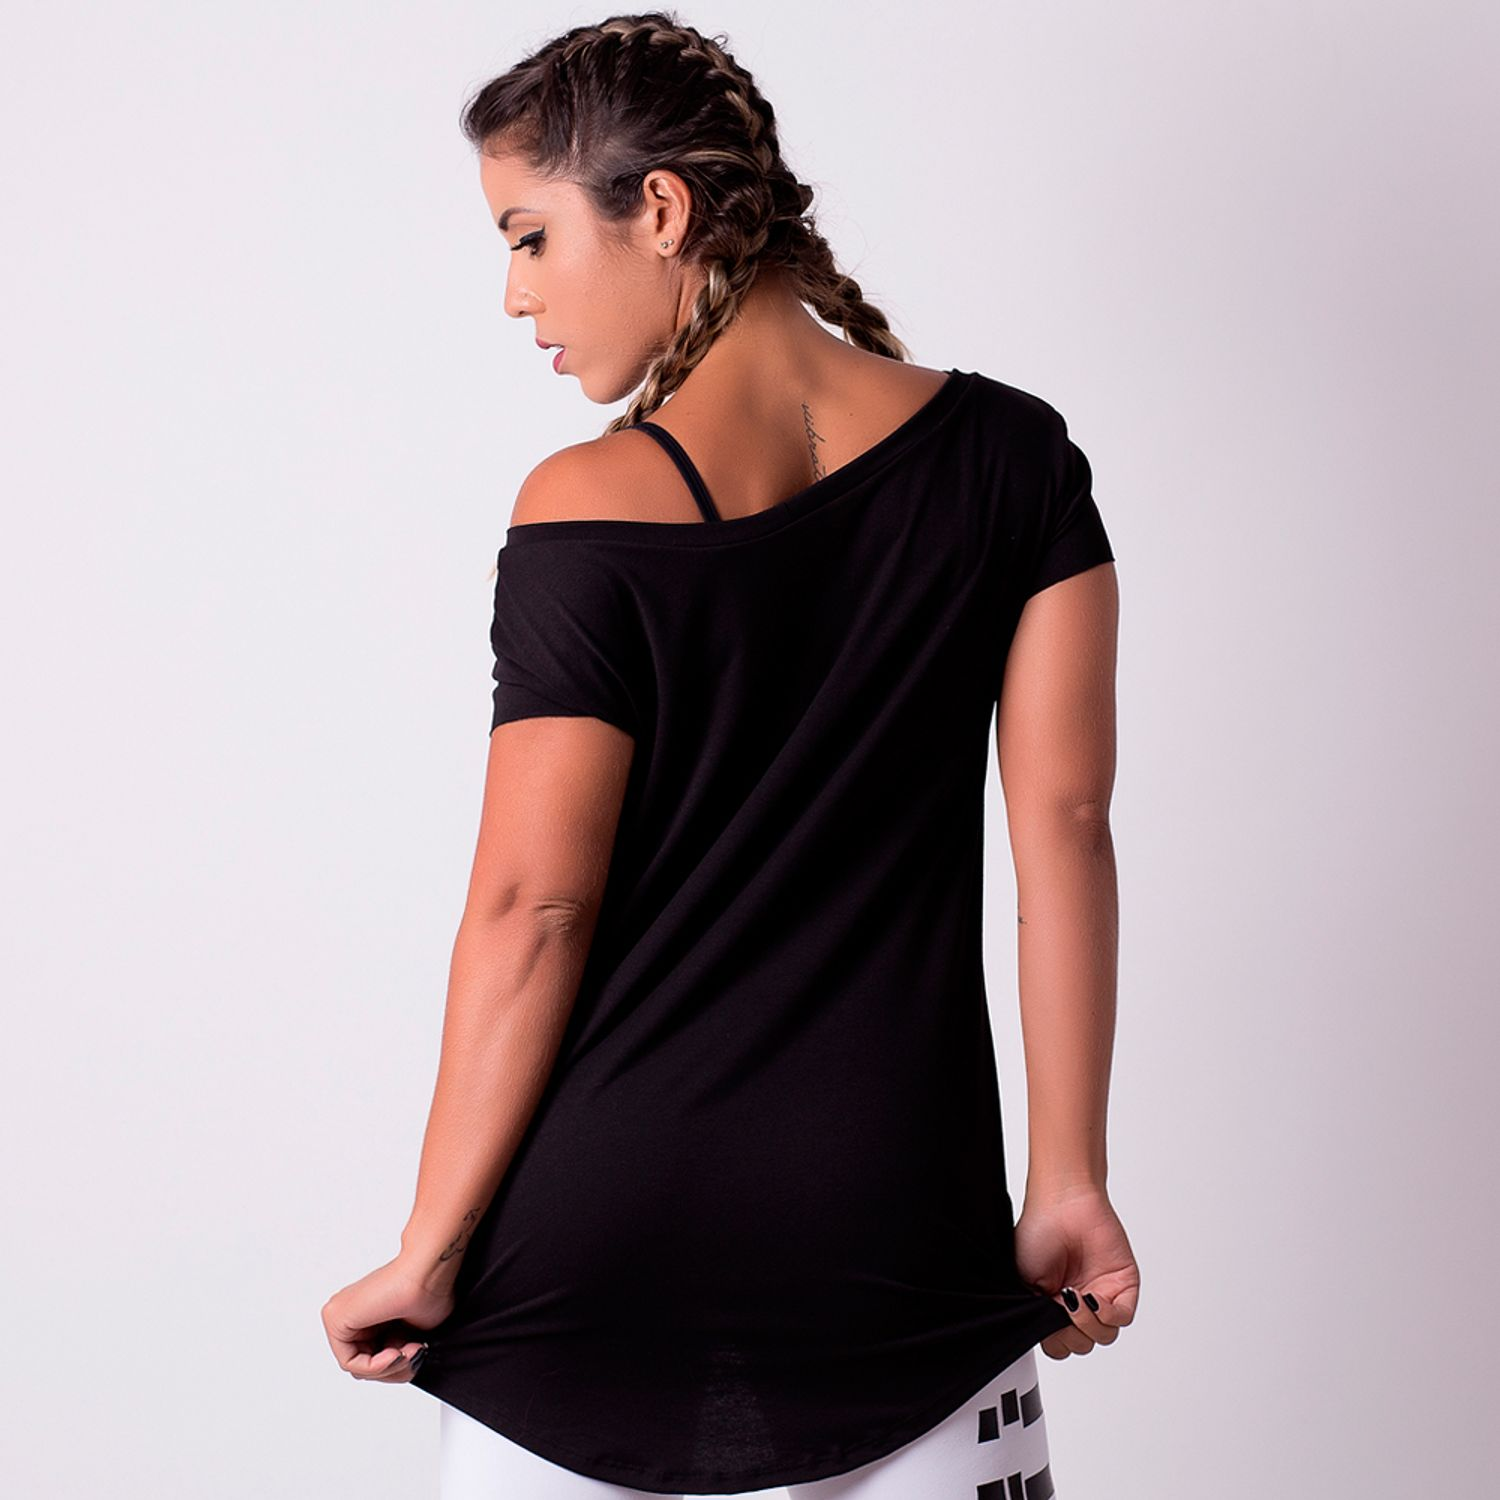 Camiseta Fitness Mullet Caveira CT203 - Honey Be 9bc2afe8ad6